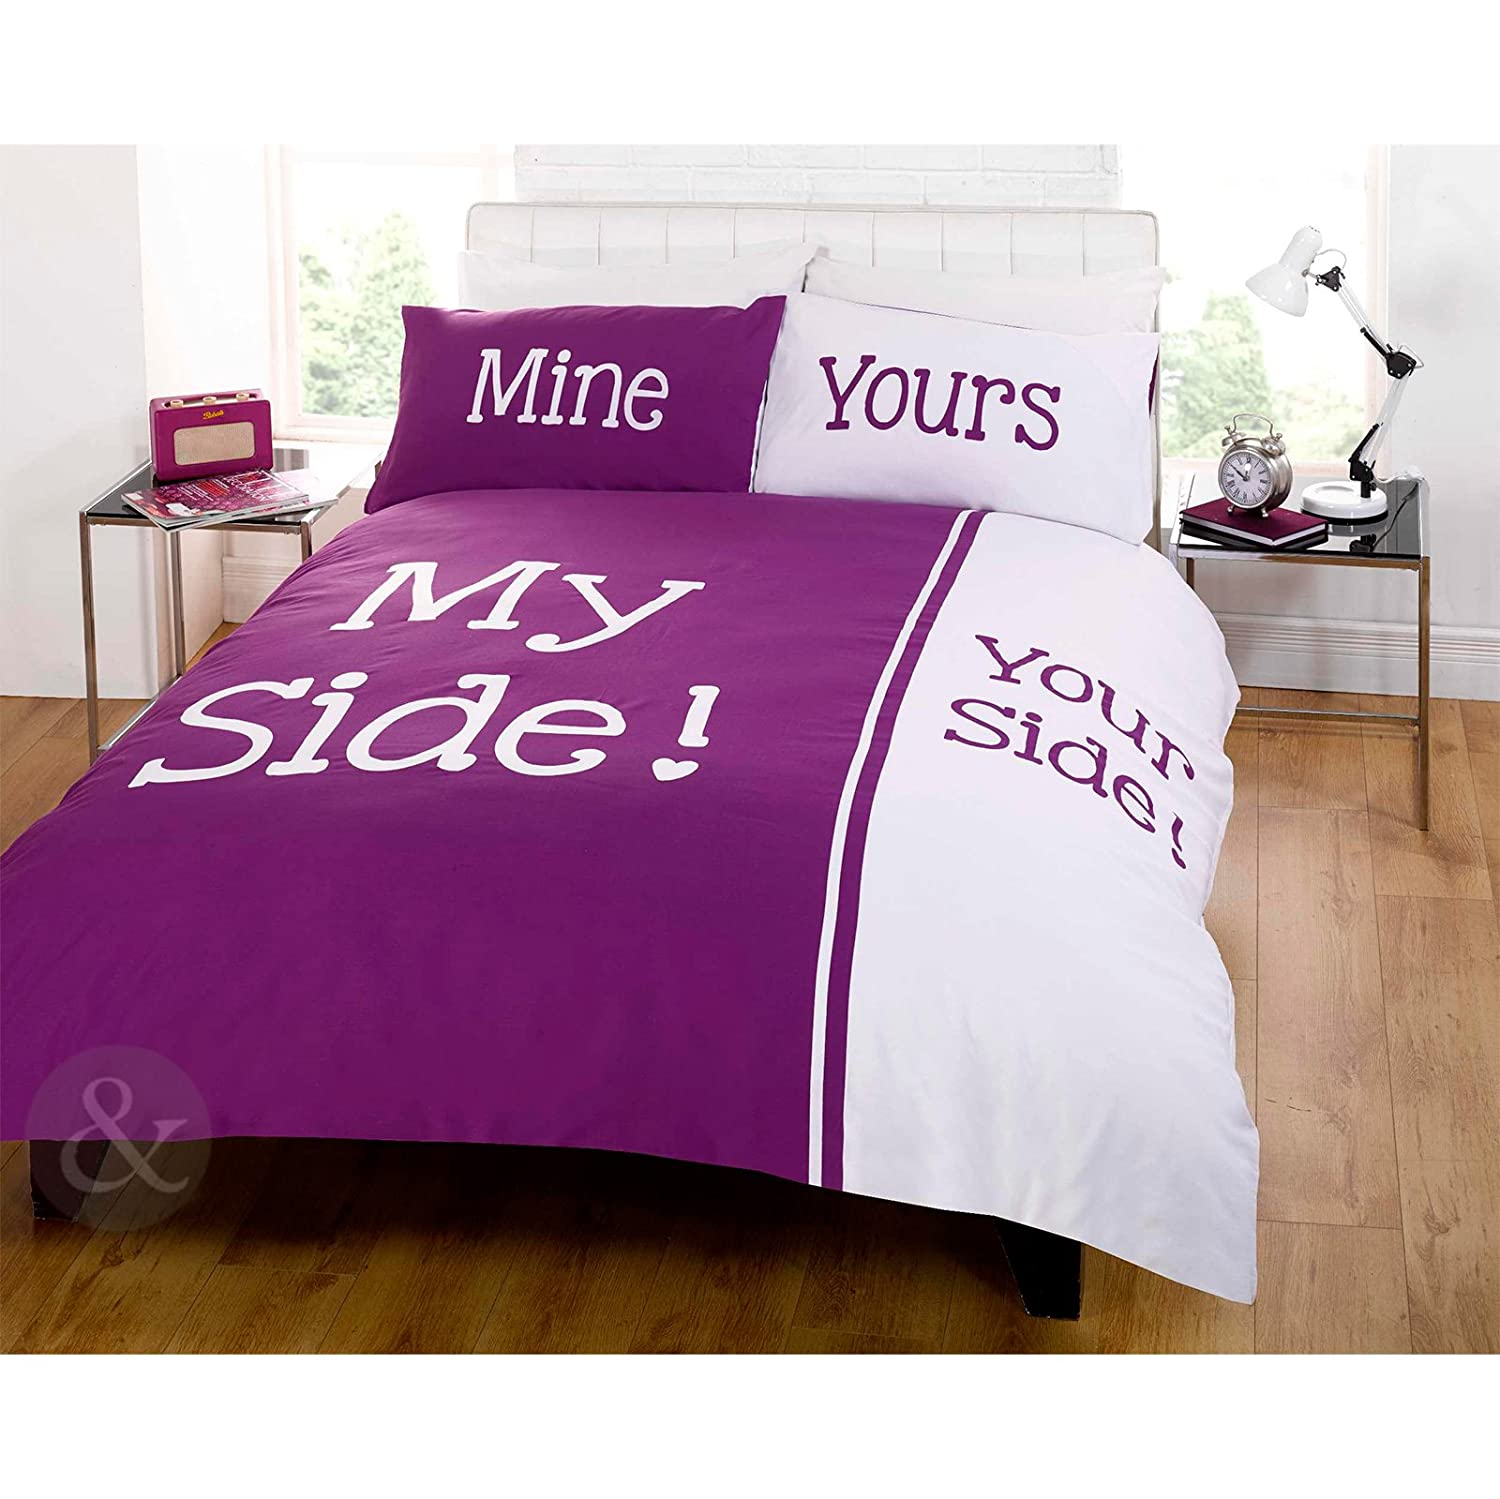 contemporary duvet cover  my side your side white damson purple  - contemporary duvet cover  my side your side white damson purple beddingbed set damson ( purple white ) king size duvet cover ( kingsize )amazoncouk